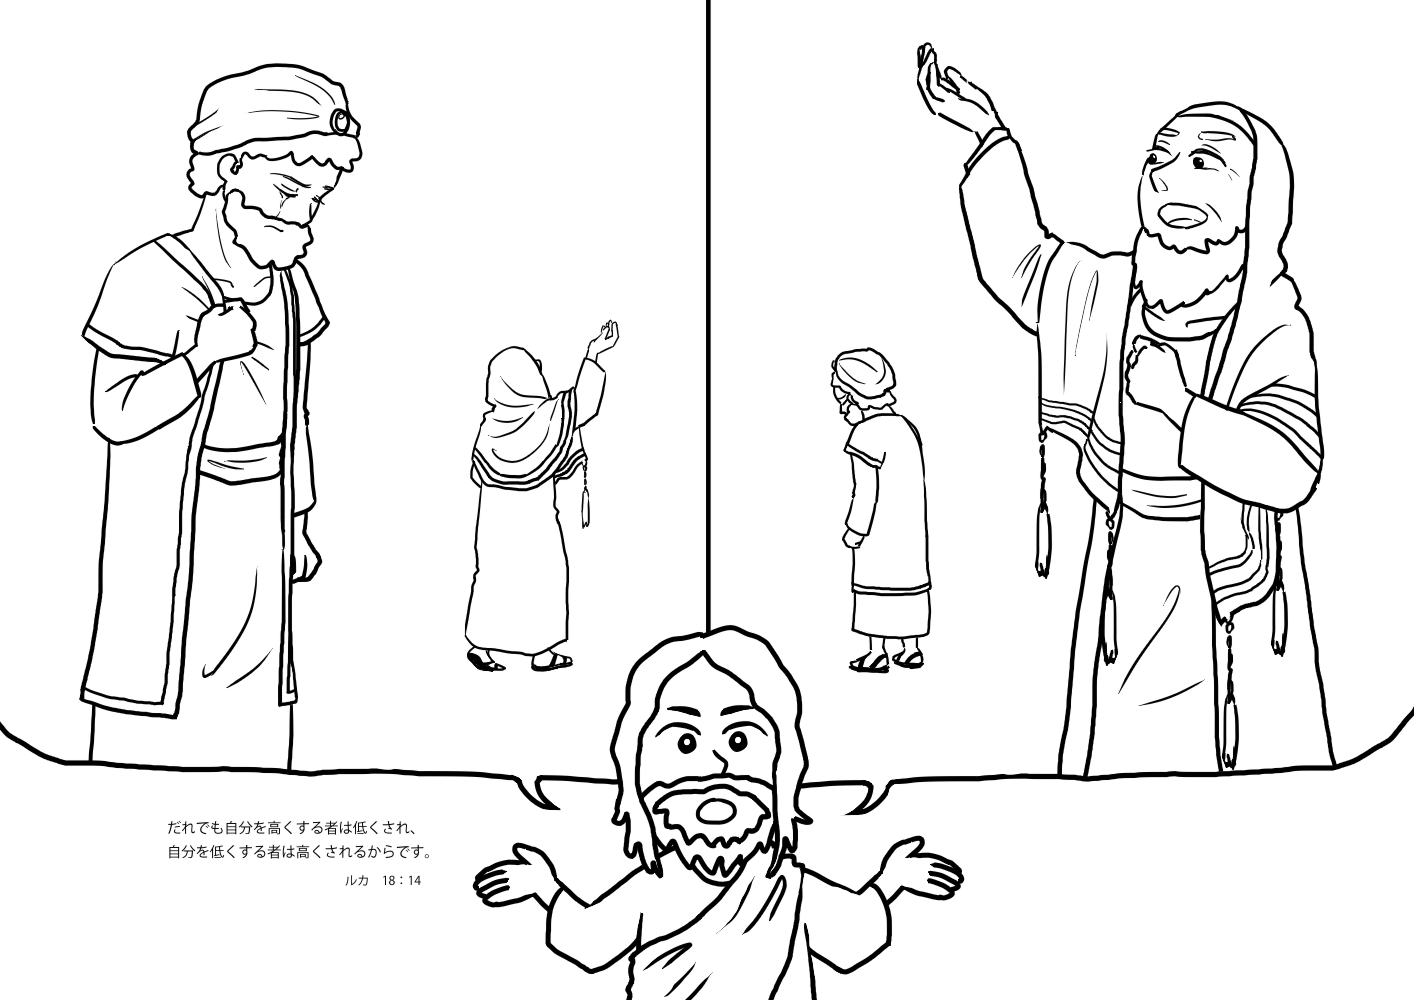 Pharisee and tax collector coloring sketch coloring page for The pharisee and the tax collector coloring page